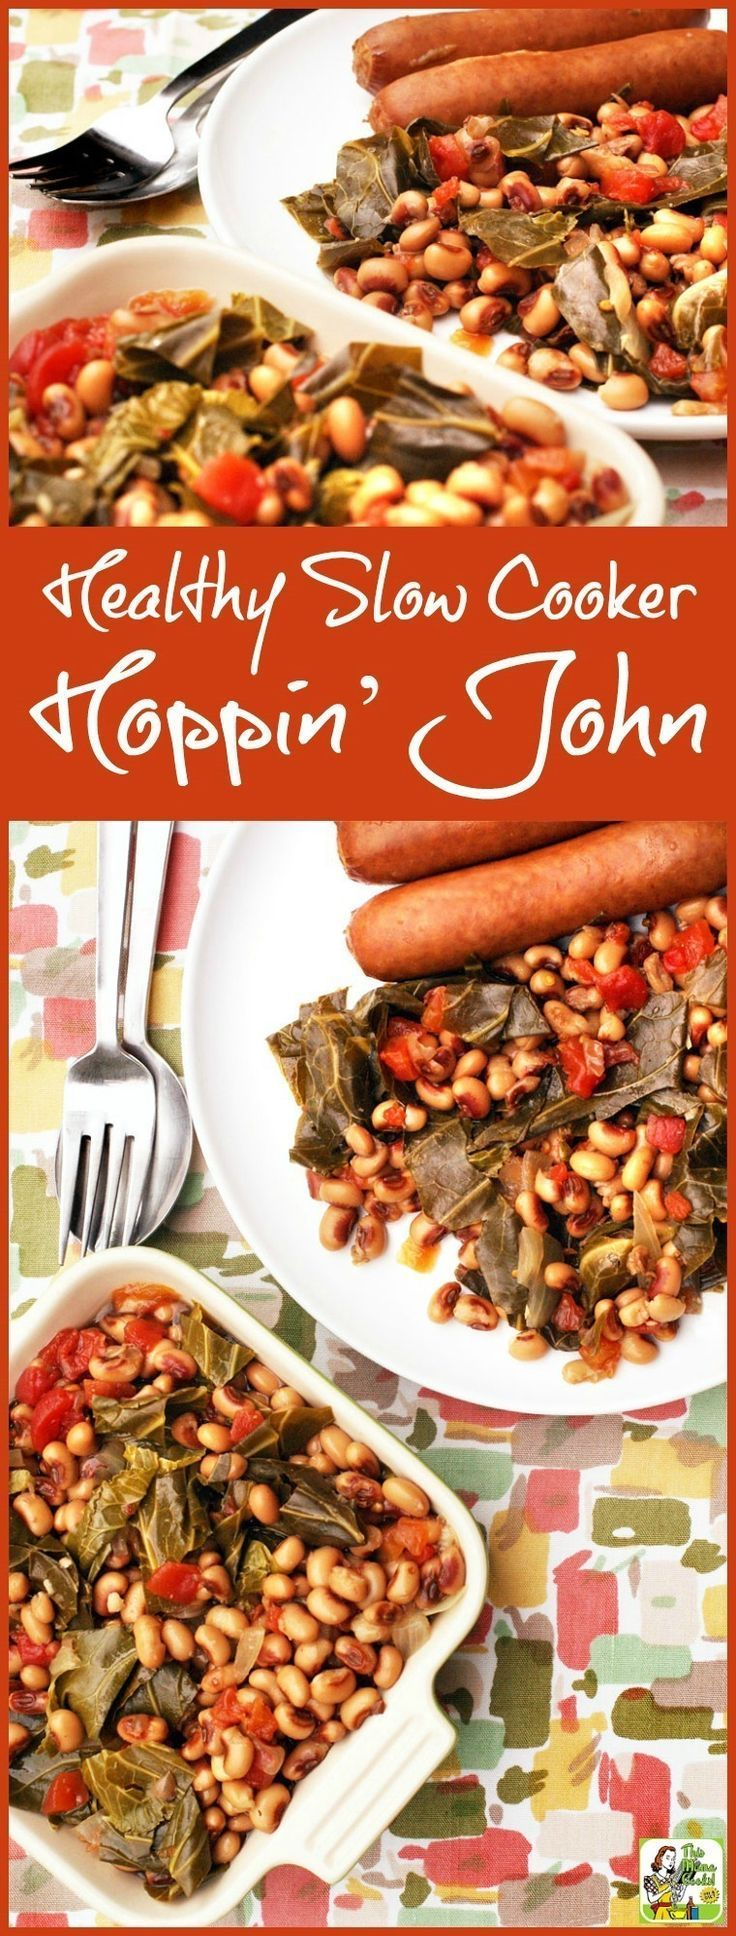 Looking for a Healthy Slow Cooker Hoppin John recipe for New Year's Day? Click to get an easy to make Hoppin John recipe you can make in your Crock-Pot!